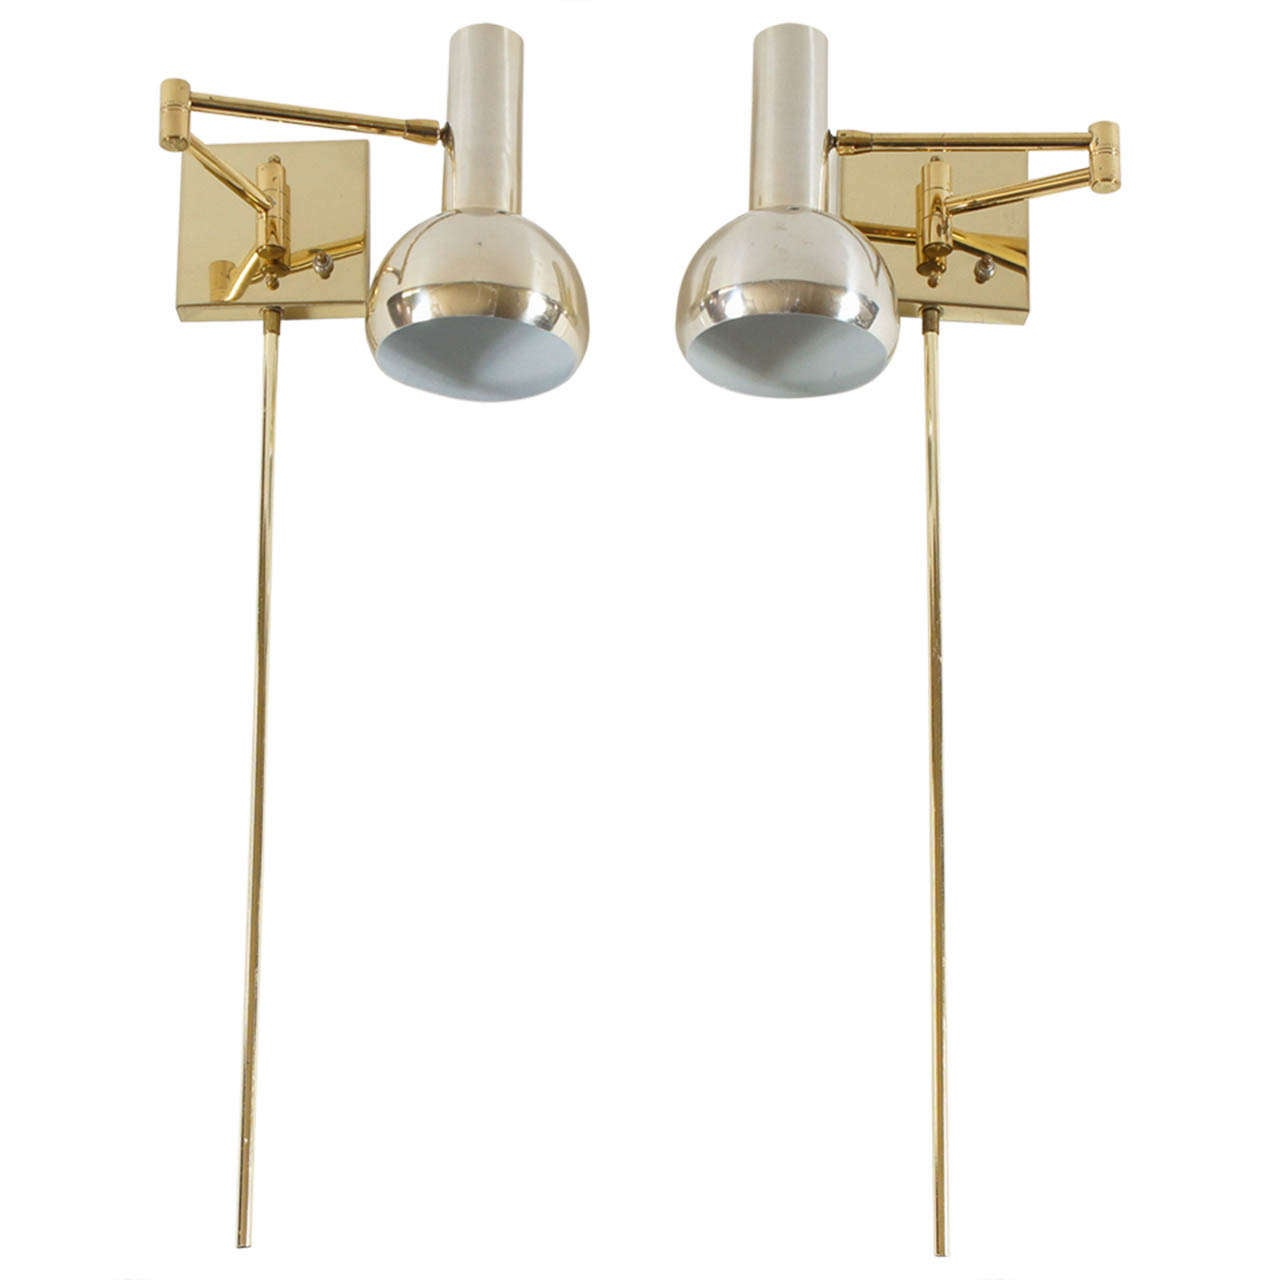 Wall Lights In Sheffield : Vintage Brass Swing-Arm Wall Mount Reading Lamps - Italy, c. 1970 at 1stdibs